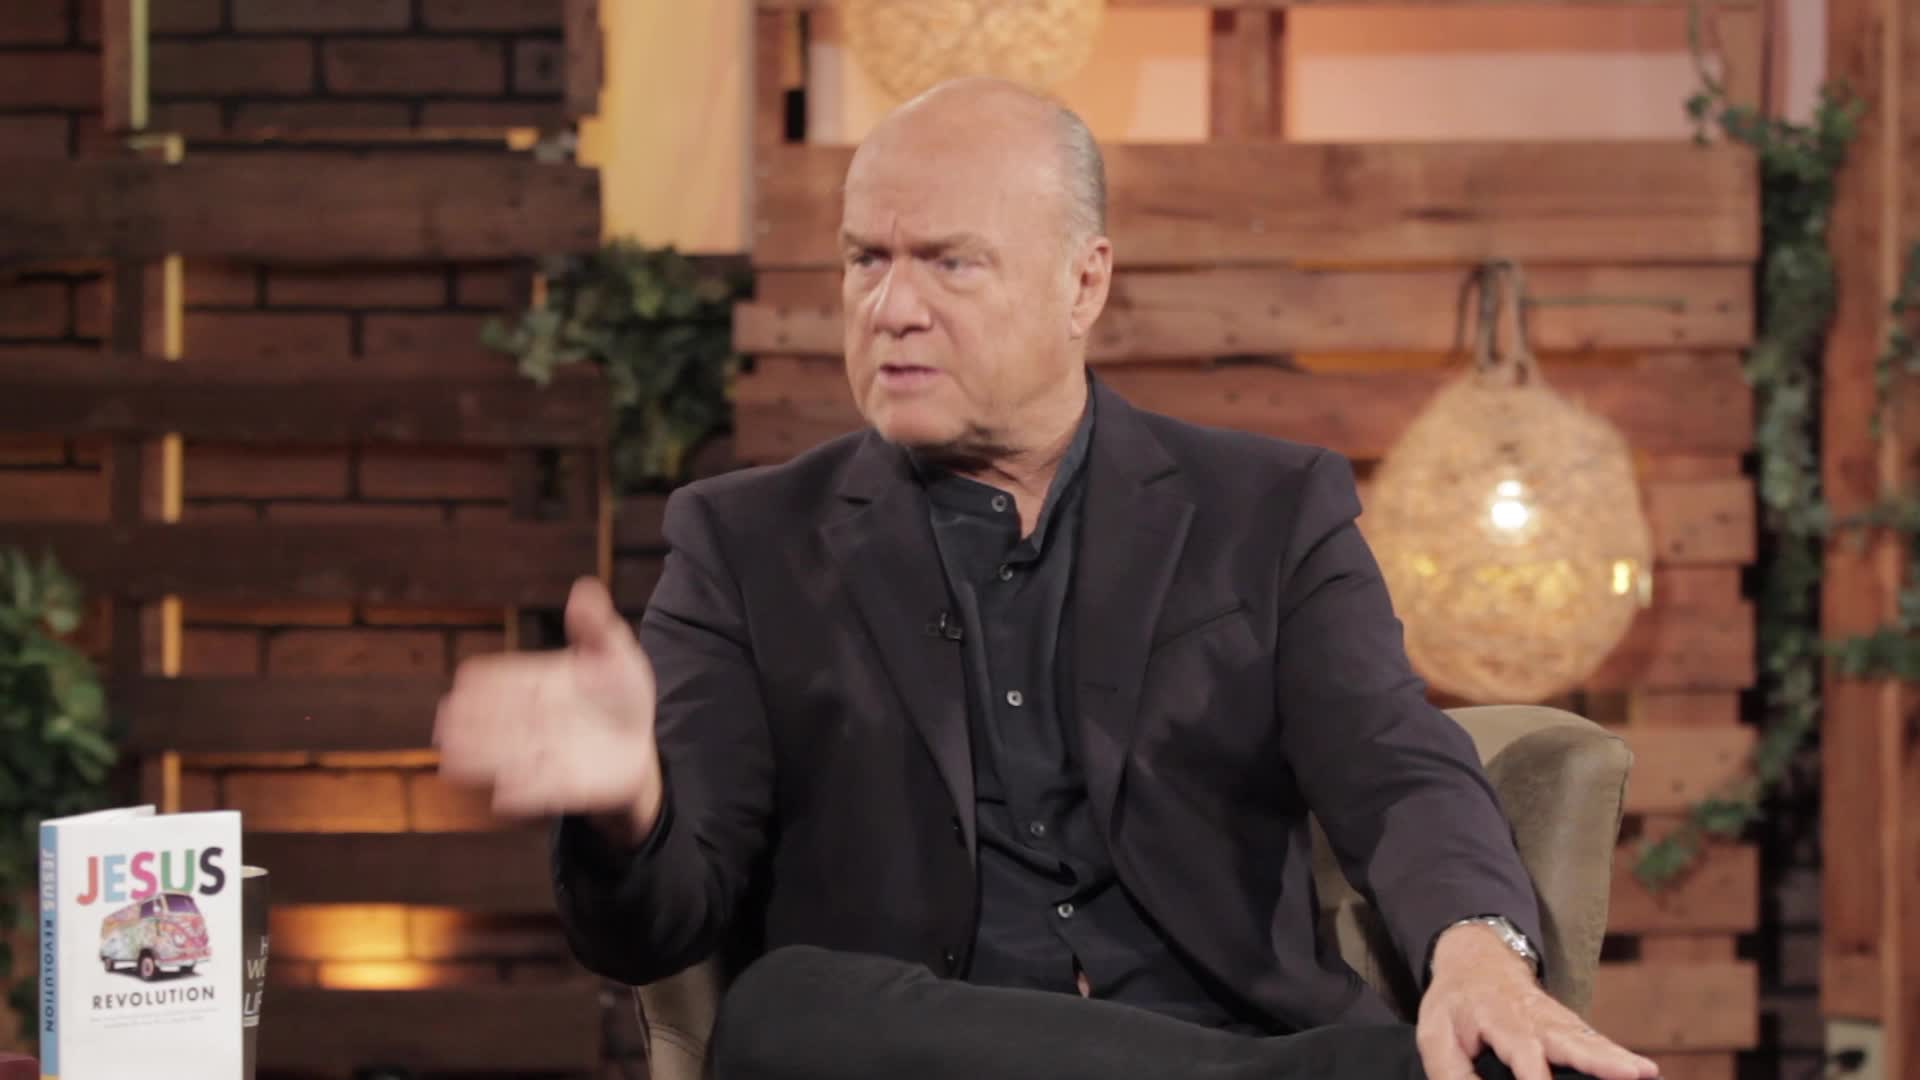 Greg Laurie: The Jesus Revolution